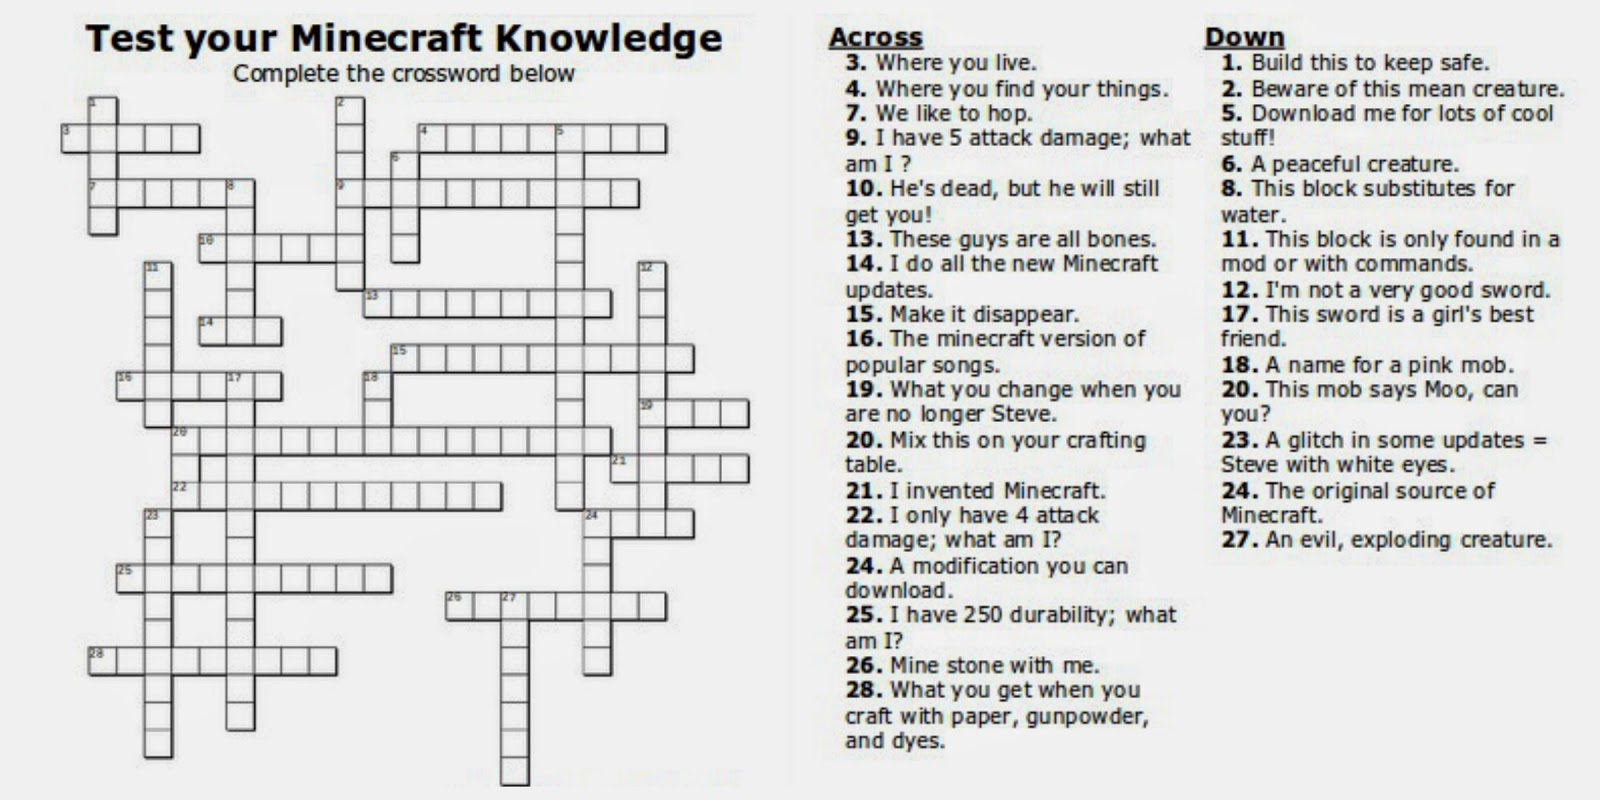 Free Printable Minecraft Crossword Search: Test Your Minecraft - Make Your Own Crossword Puzzle Free Printable With Answer Key